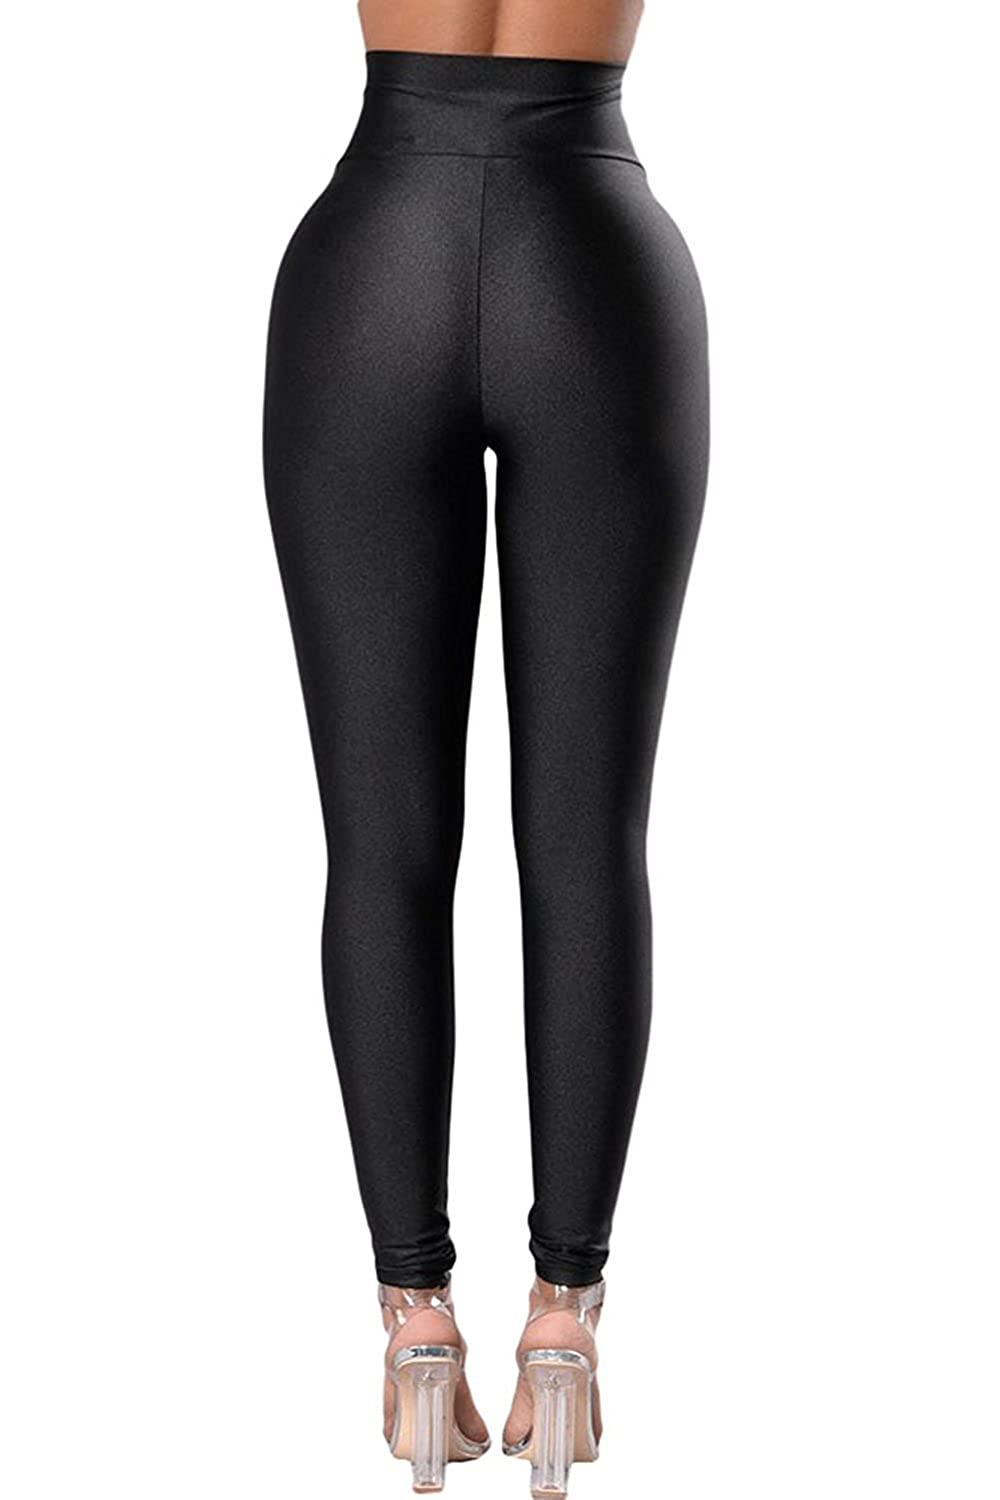 Aranmei Sport Leggings Damen Yoga Leggings Schwarz High Waist Hose Skinny Stretch Fitness Hose